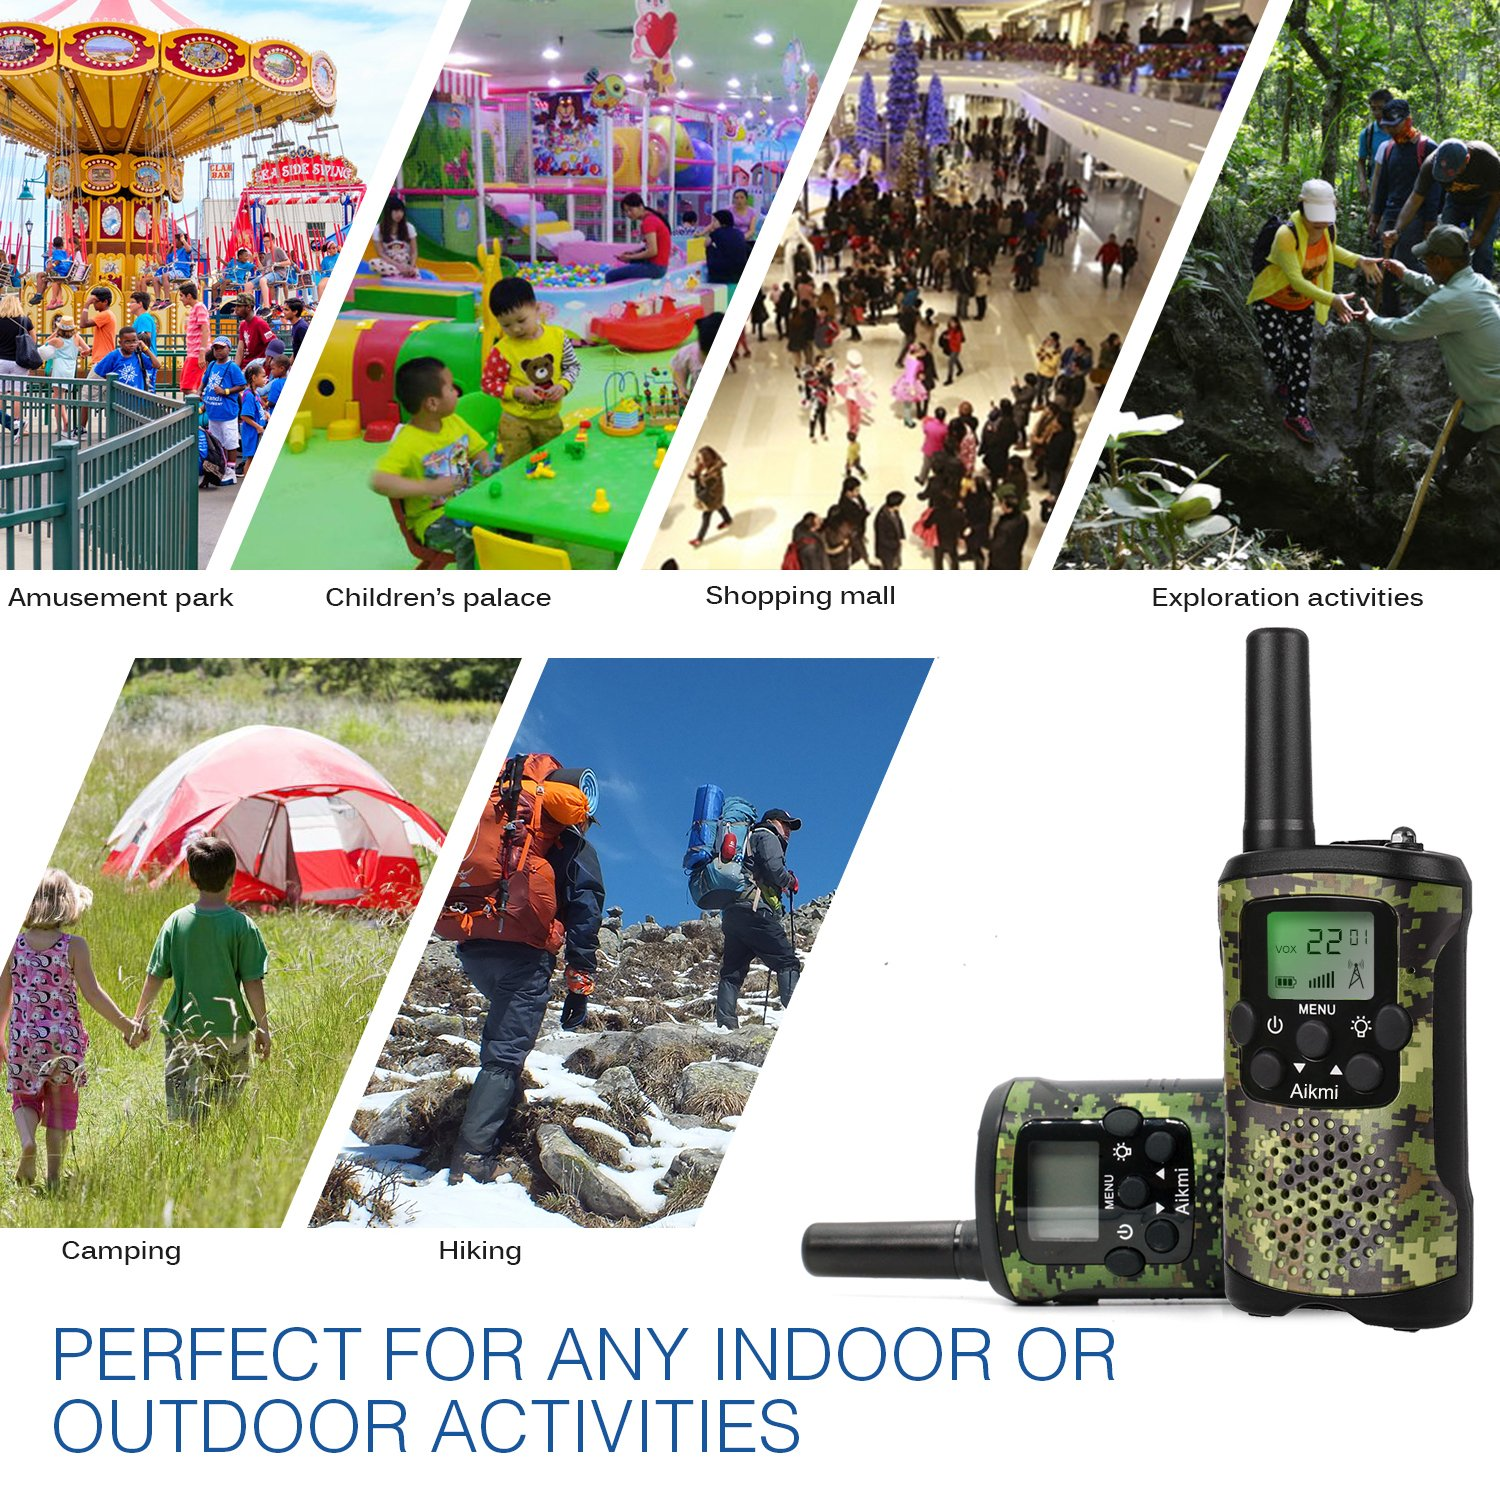 Walkie Talkies for Kids 22 Channel 2 Way Radio 3 Miles Long Range Handheld Walkie Talkies Durable Toy Best Birthday Gifts for 6 year old Boys and Girls fit Outdoor Adventure Game Camping (Green Camo) by Aikmi (Image #6)